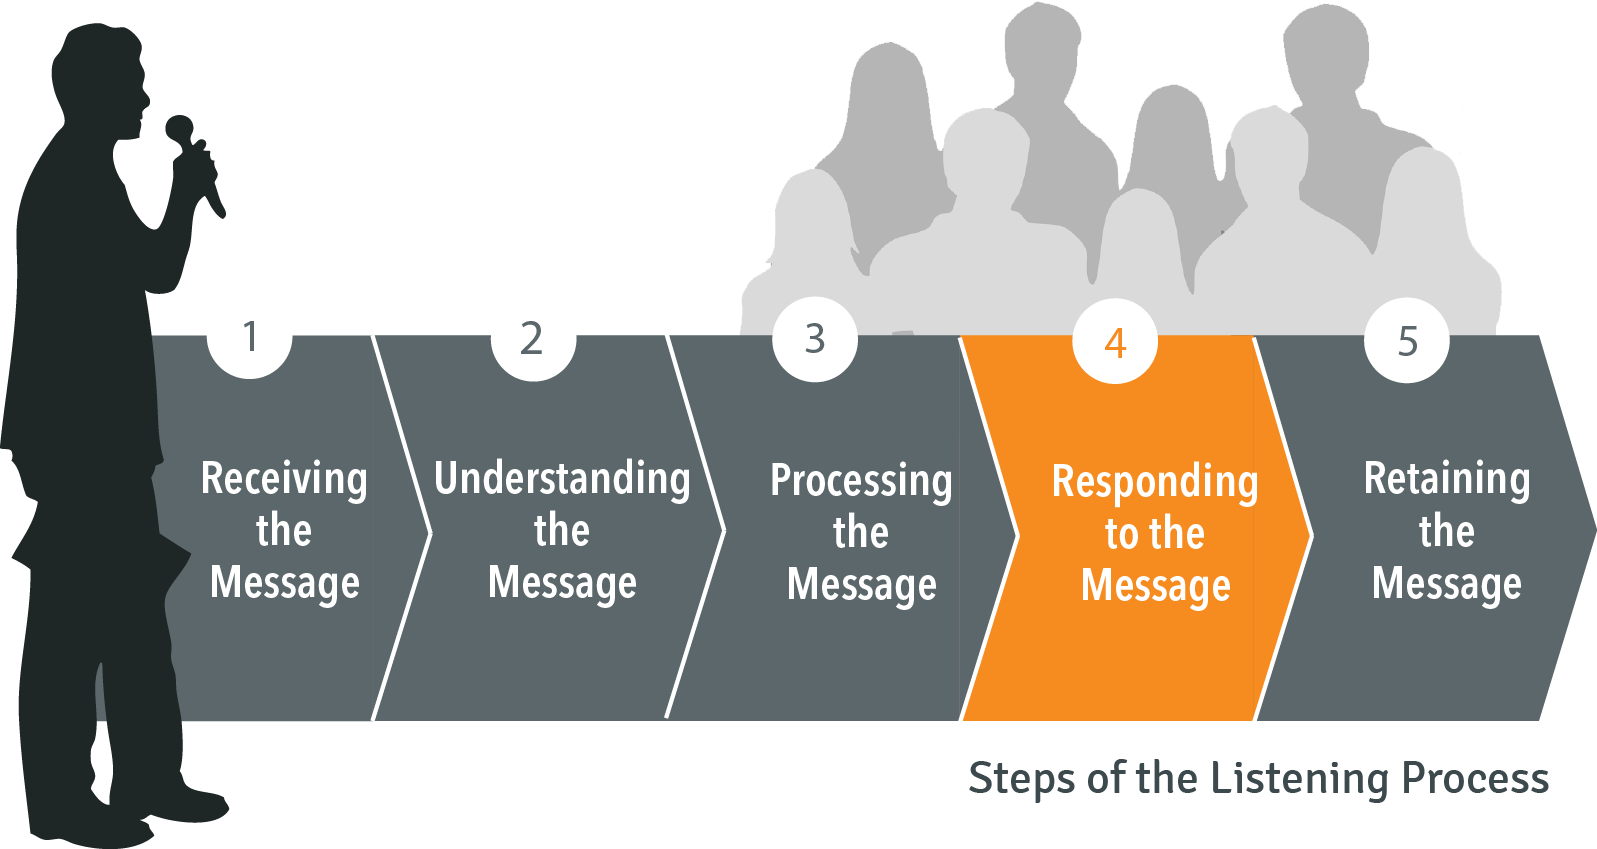 Steps of the listening process: 4. Responding to the message